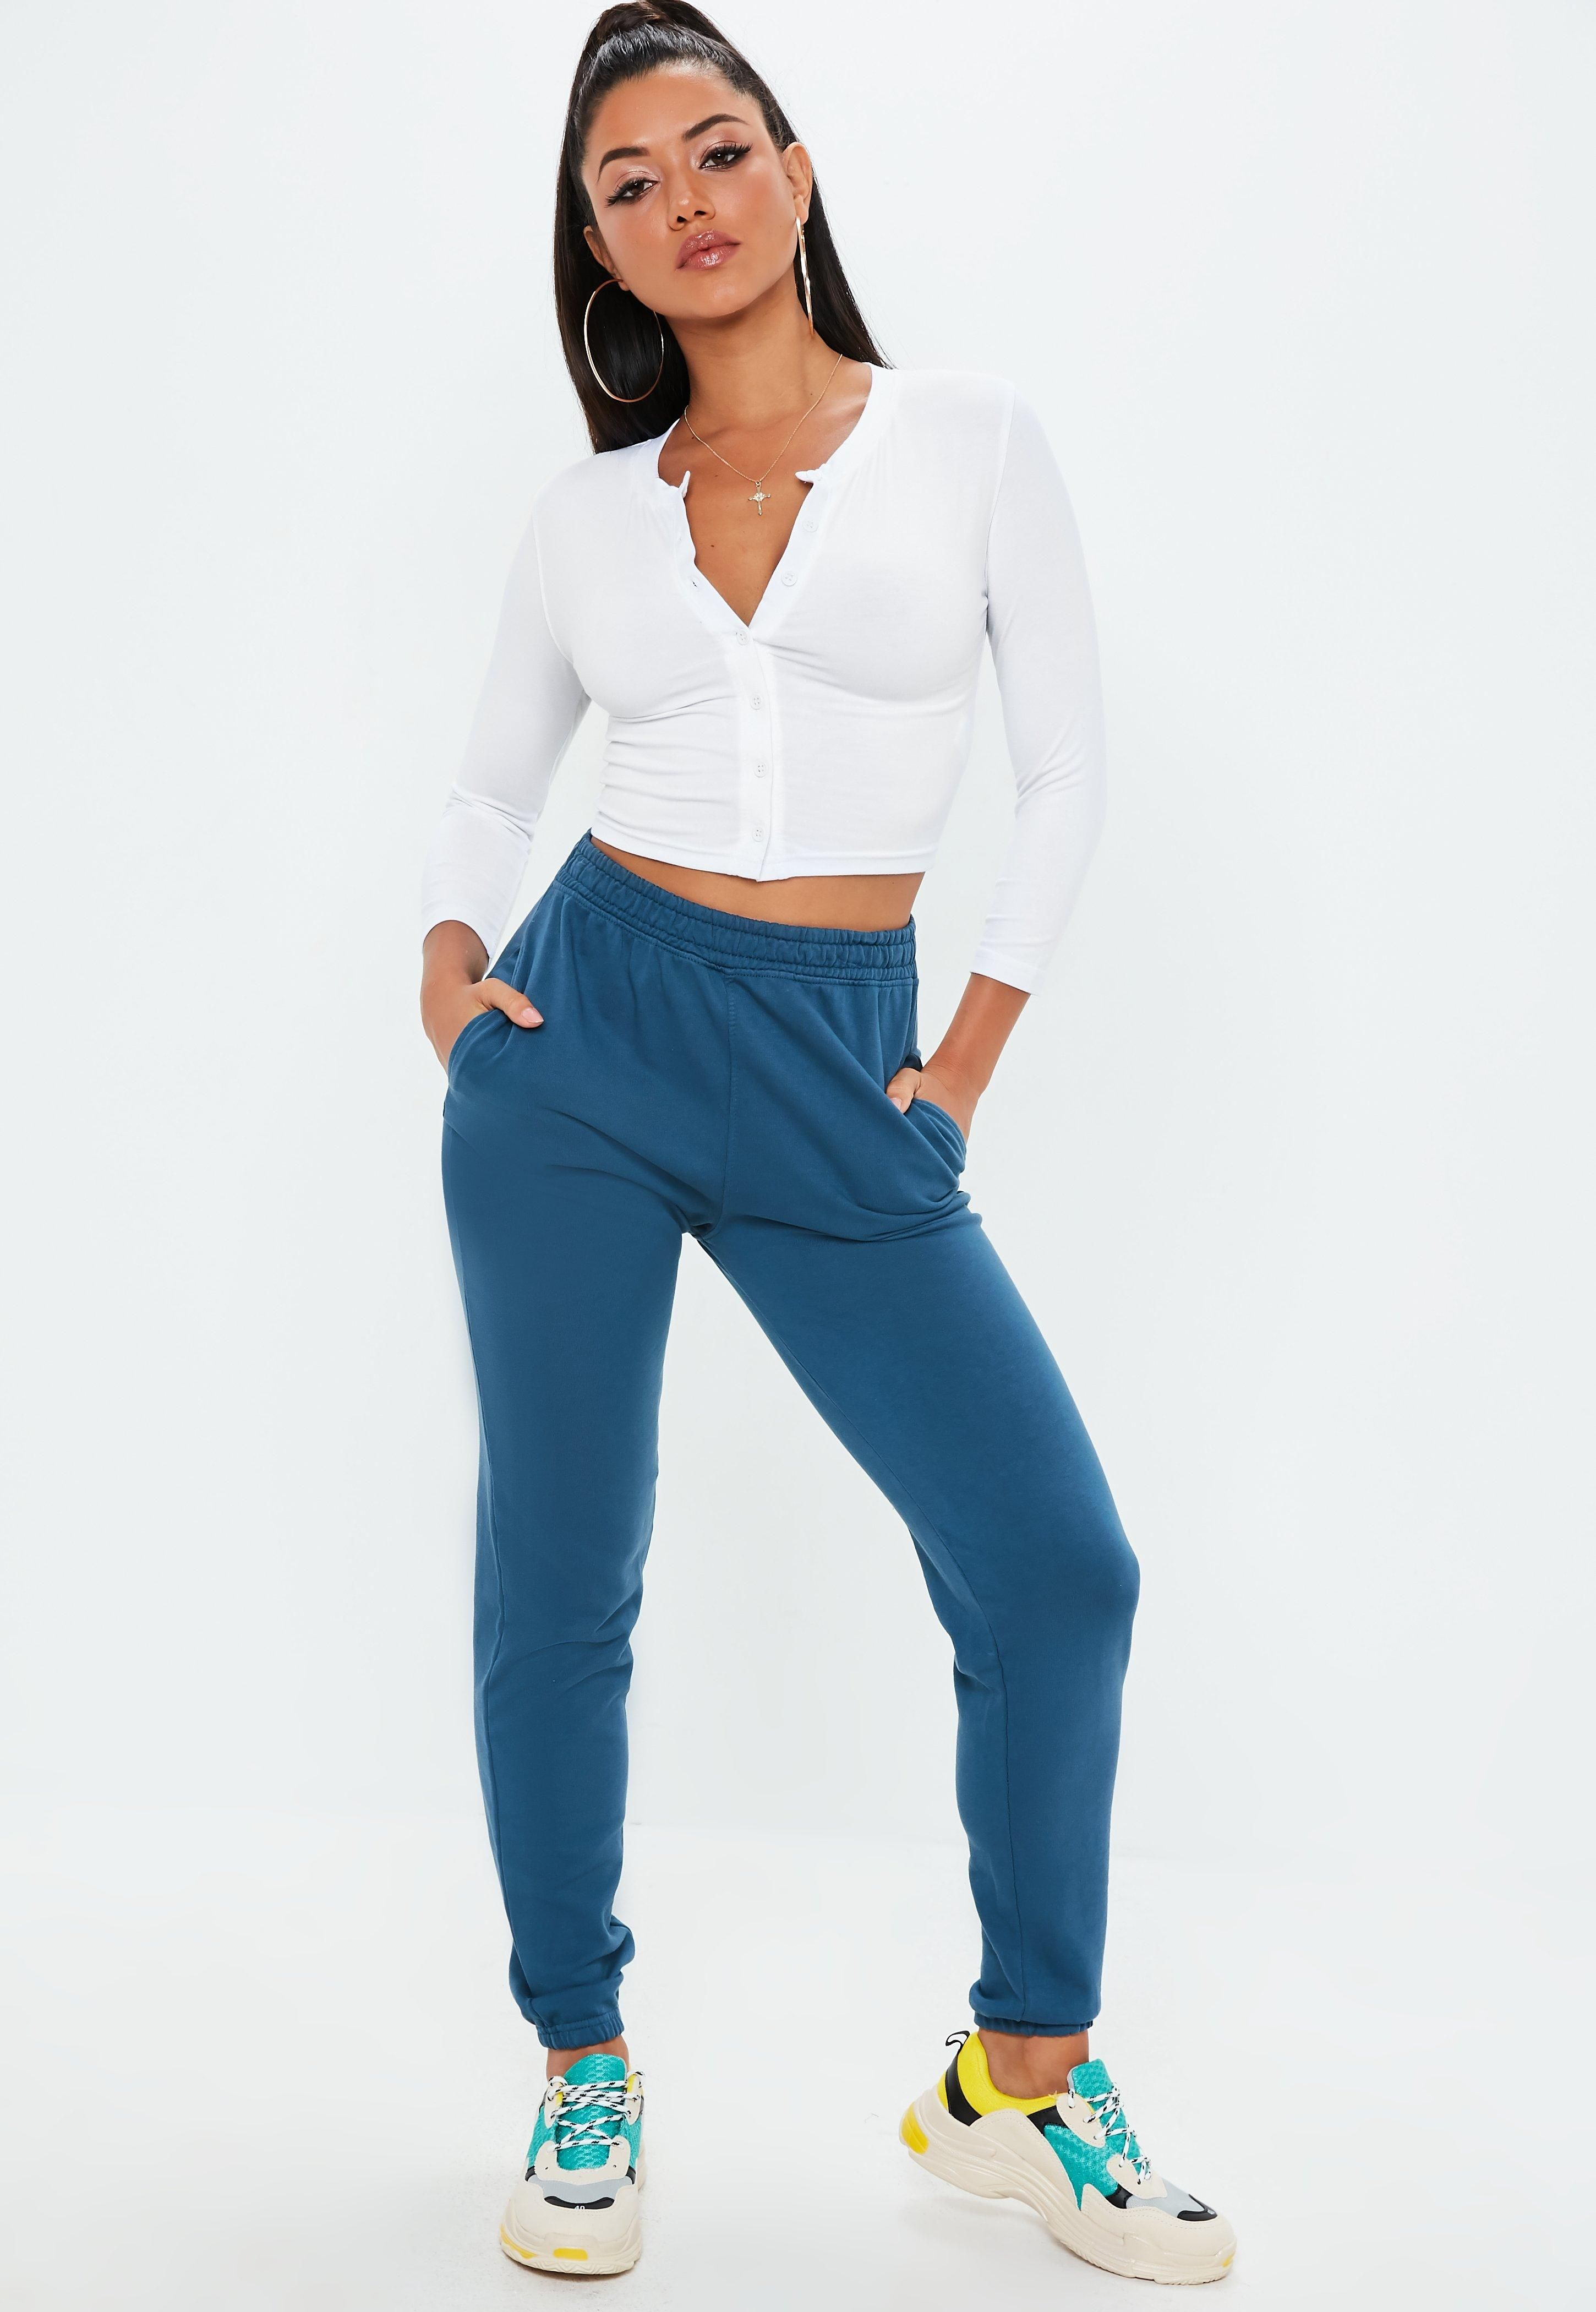 99b61e9cad3 White Button Front Crop Top in 2019 | Styles | Crop tops, Buttons, Tops